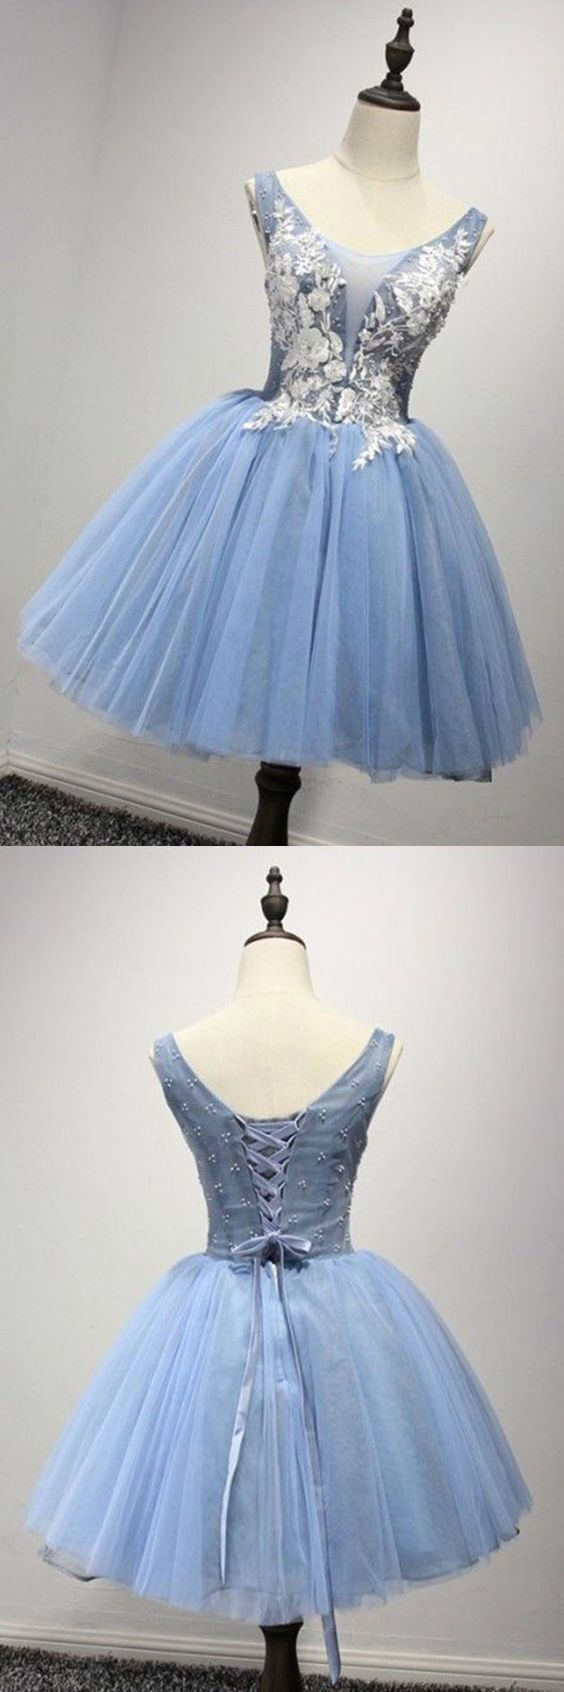 Scoop Short Blue Tulle Homecoming Dress Party Dresses With Appliques , Cheap Homecoming Dress ,Short Homecoming Dress,B0369